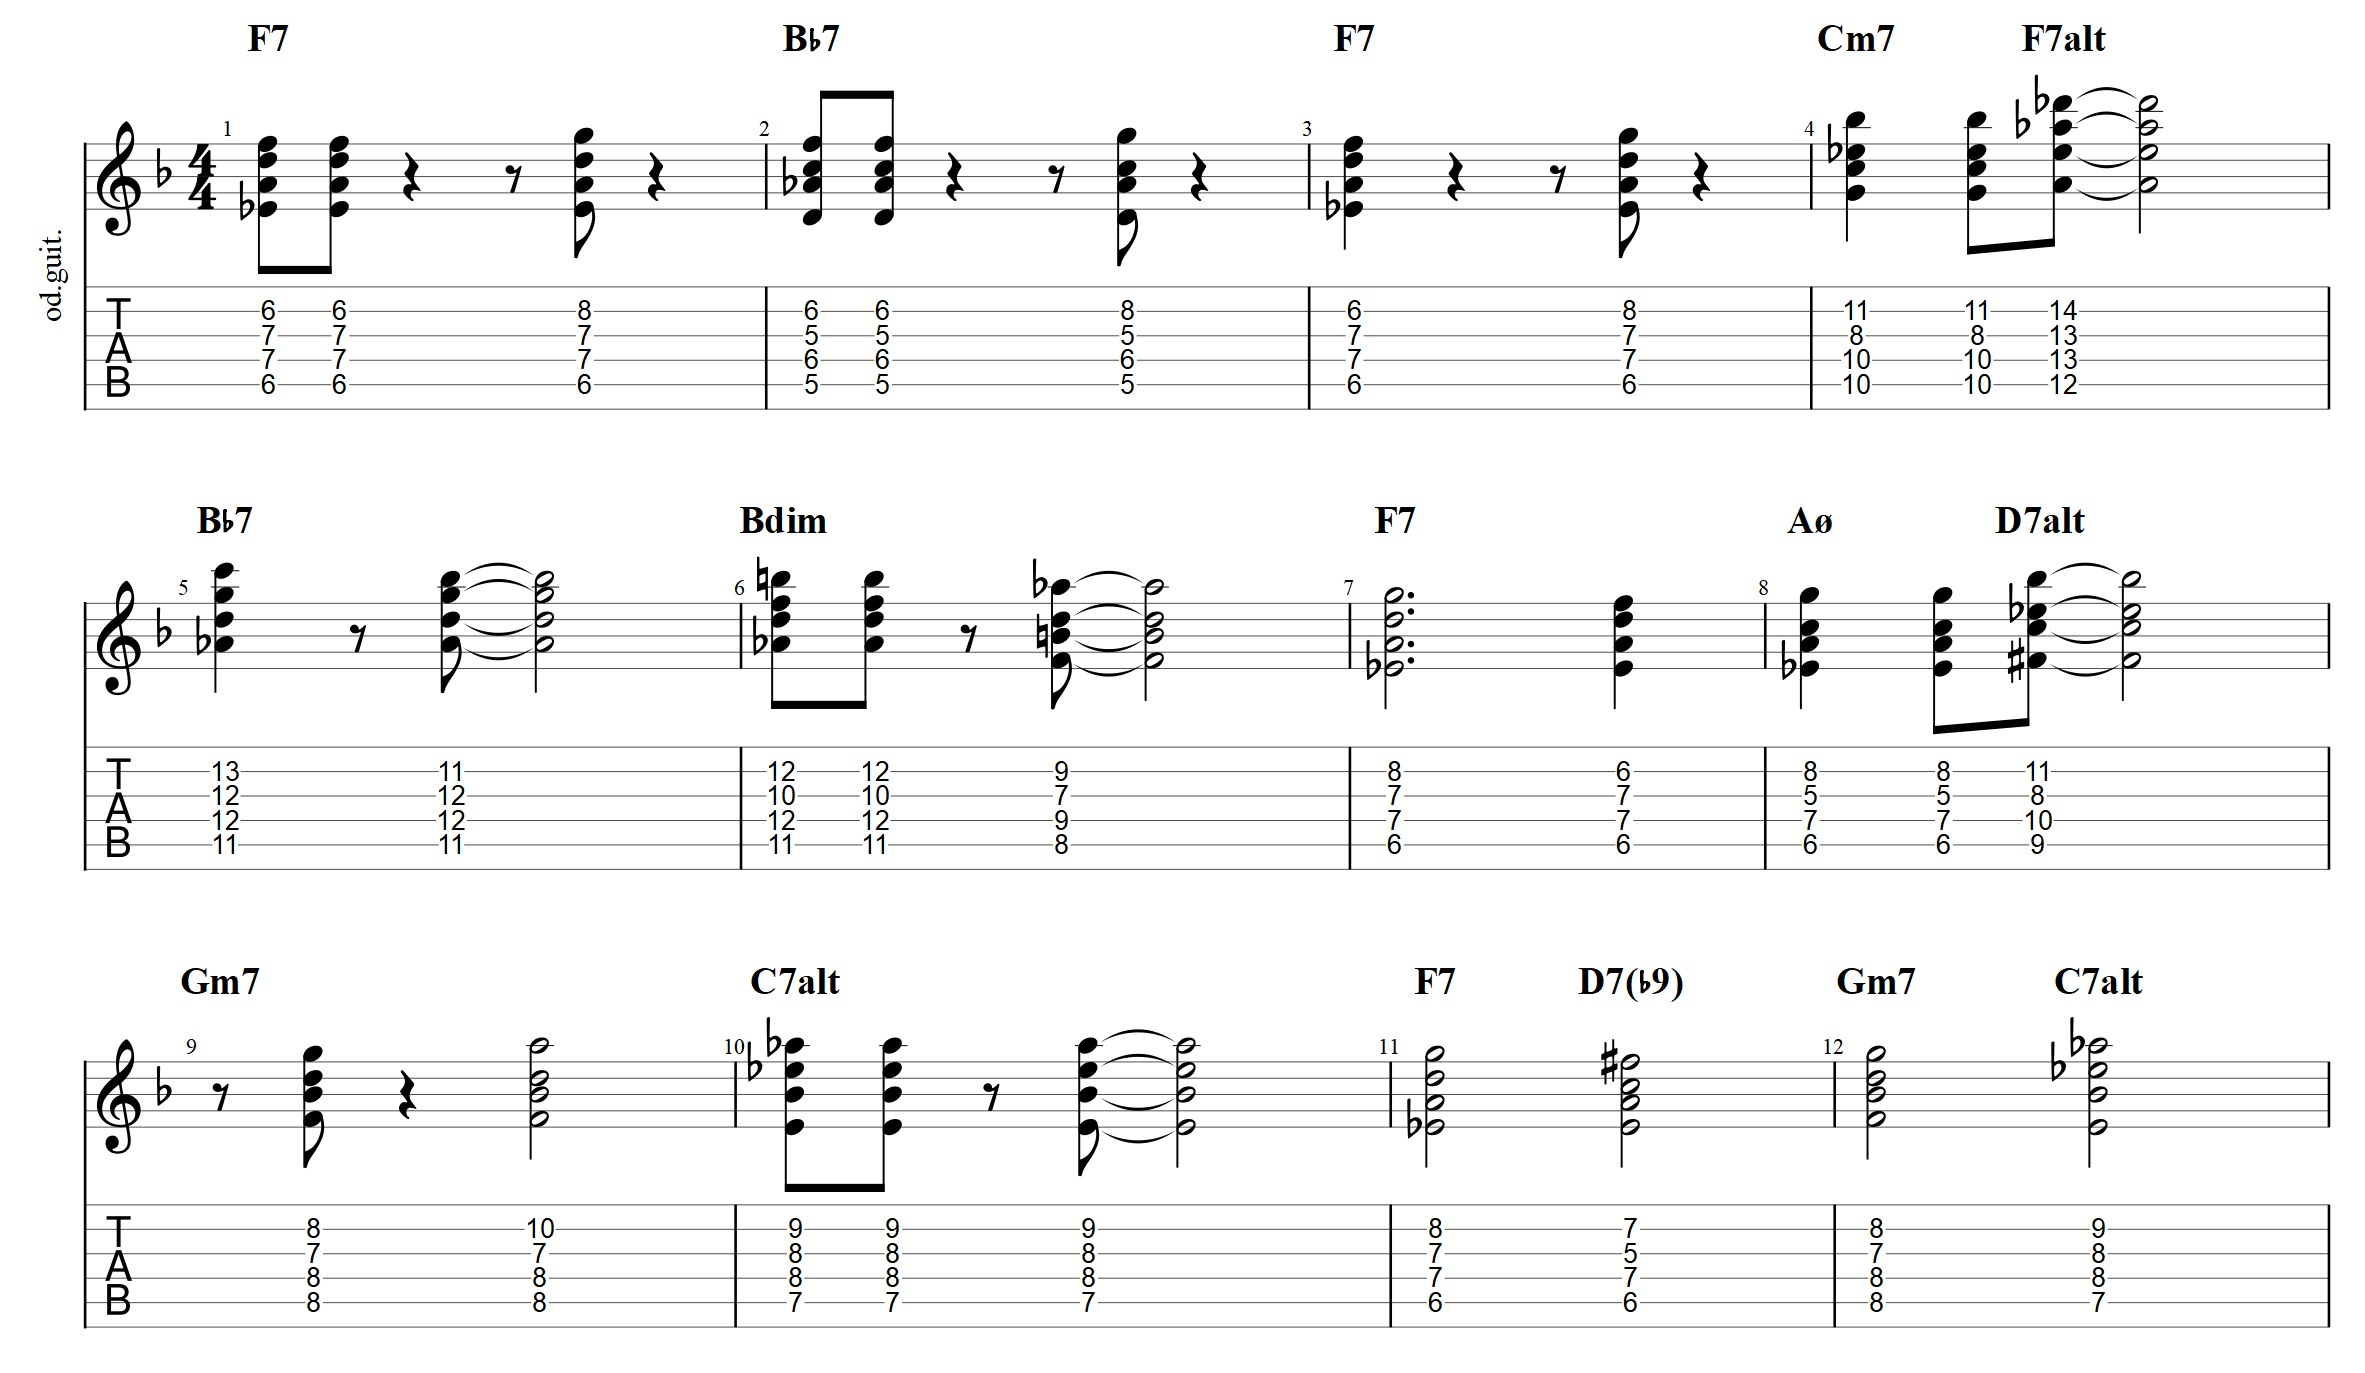 Jazz Blues using Drop 2 chords